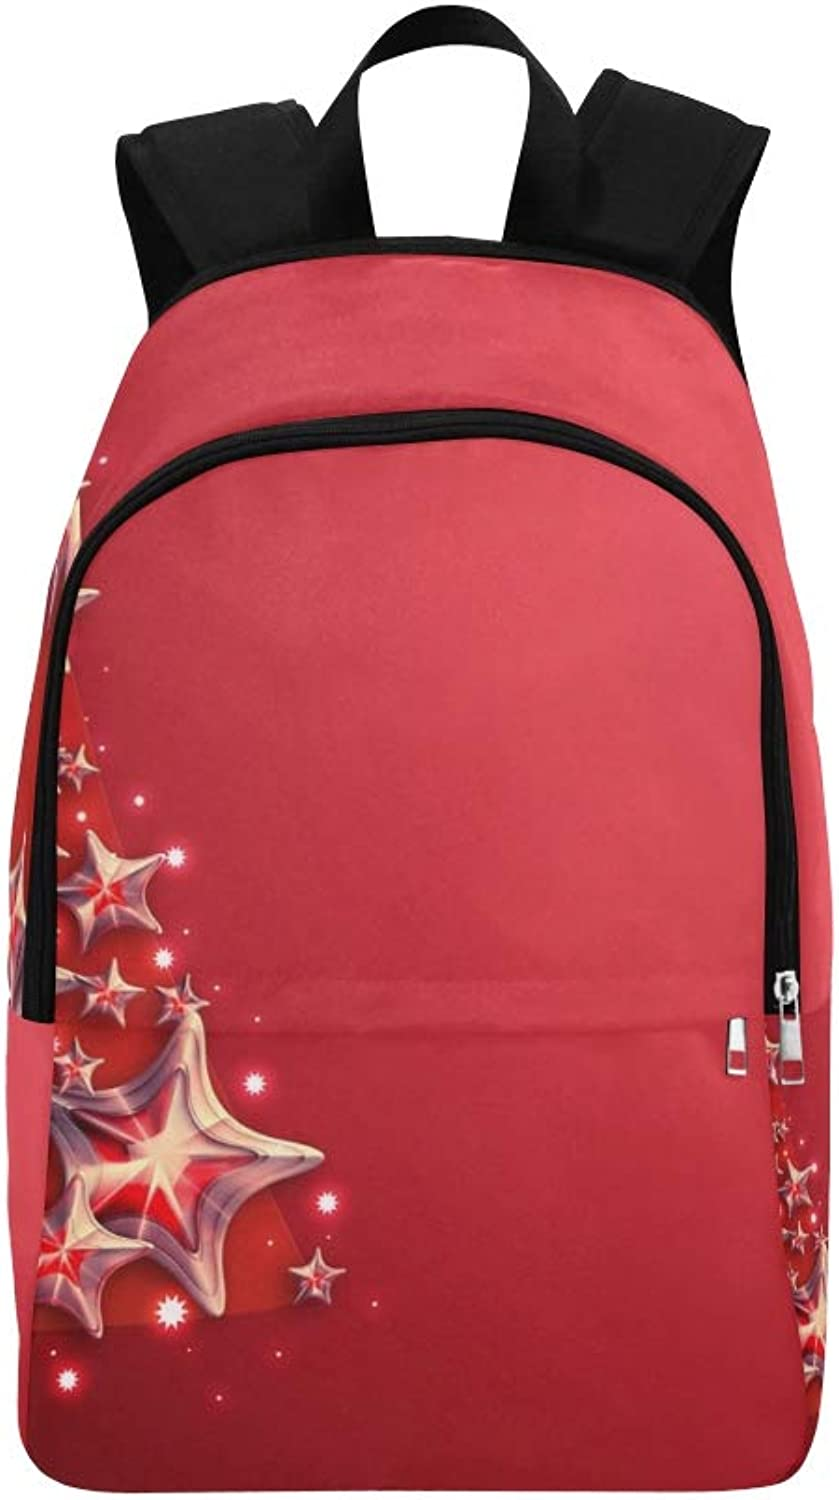 2f37be8b23bd Christmas New Years Red Christmas Casual Casual Casual Daypack ...